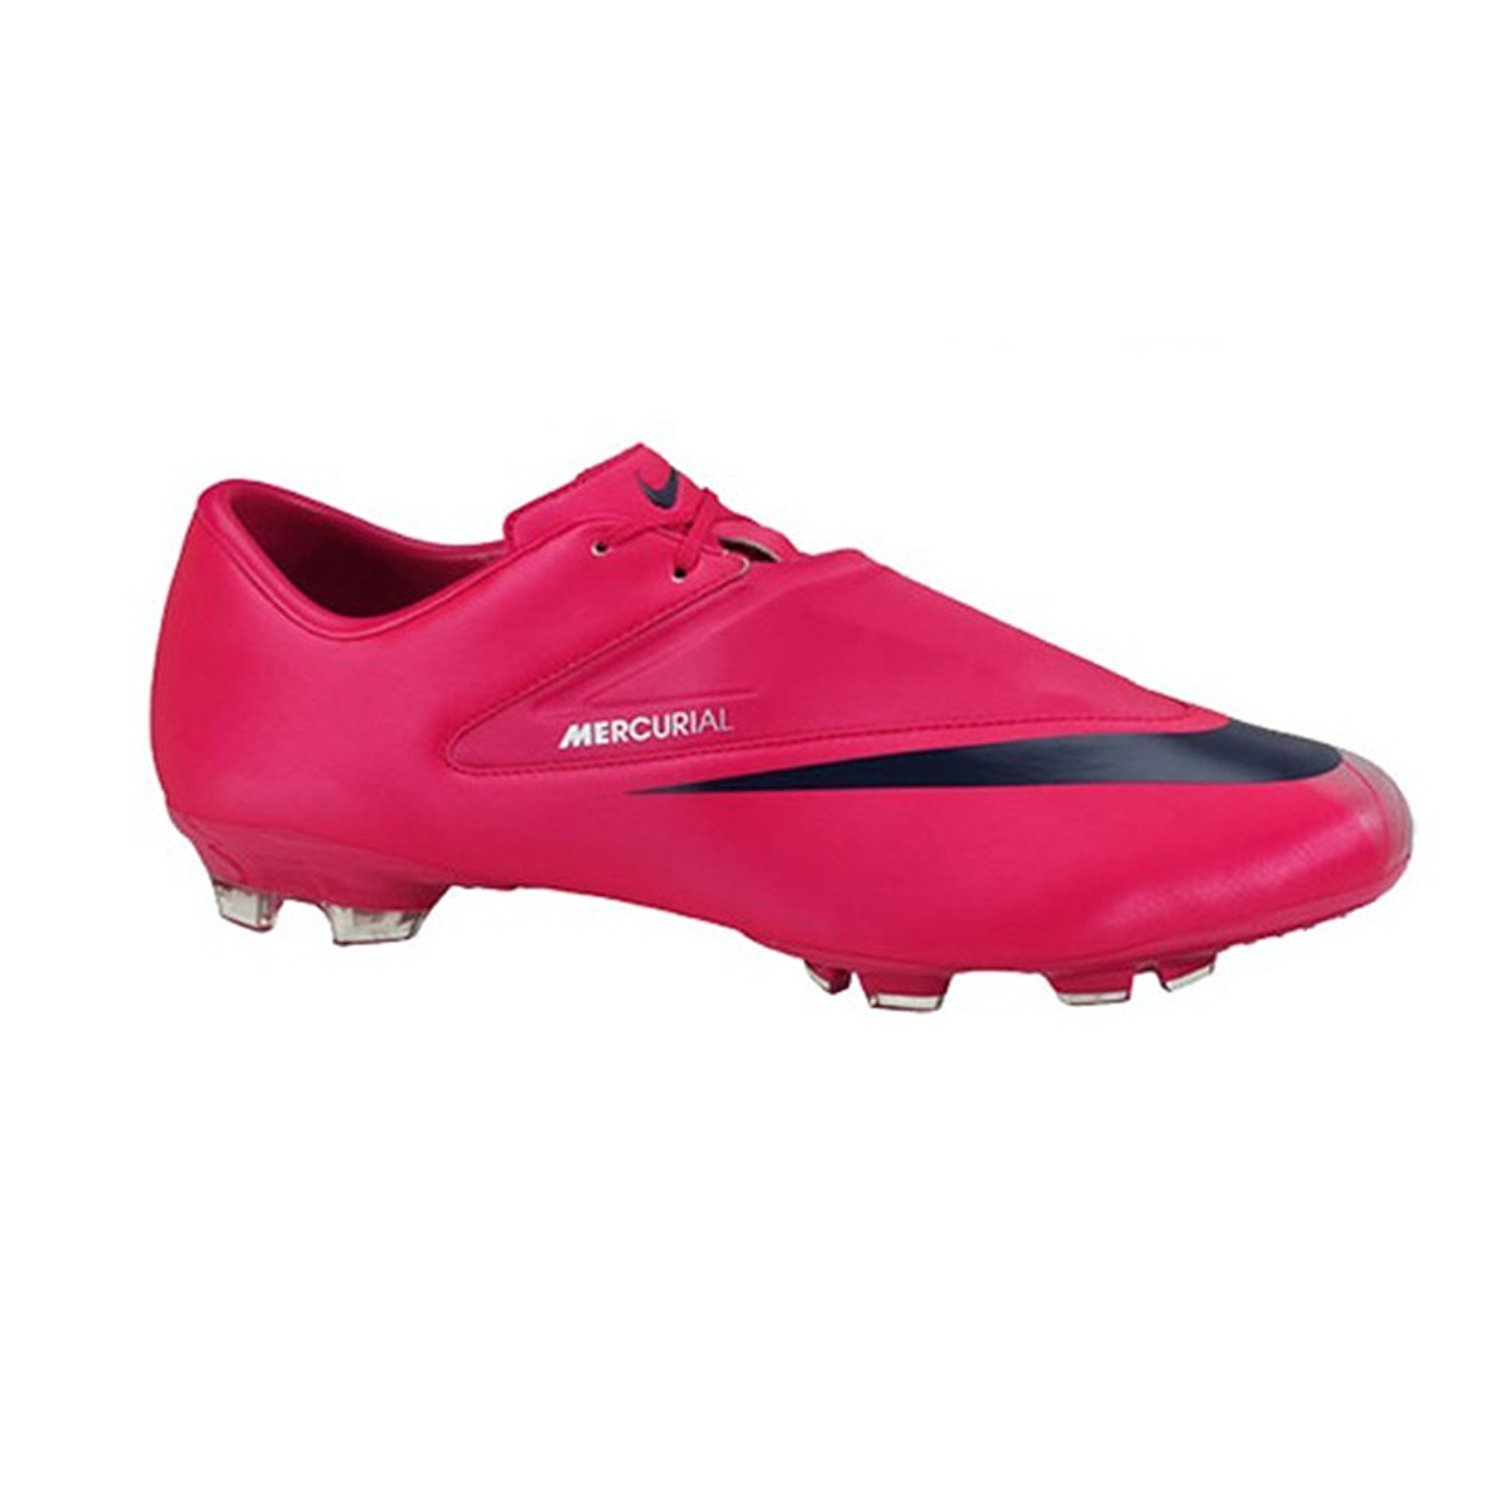 sports shoes dc2fb 545e8 Nike Mercurial Glide FG PINK 396134640: Amazon.fr: Sports et Loisirs